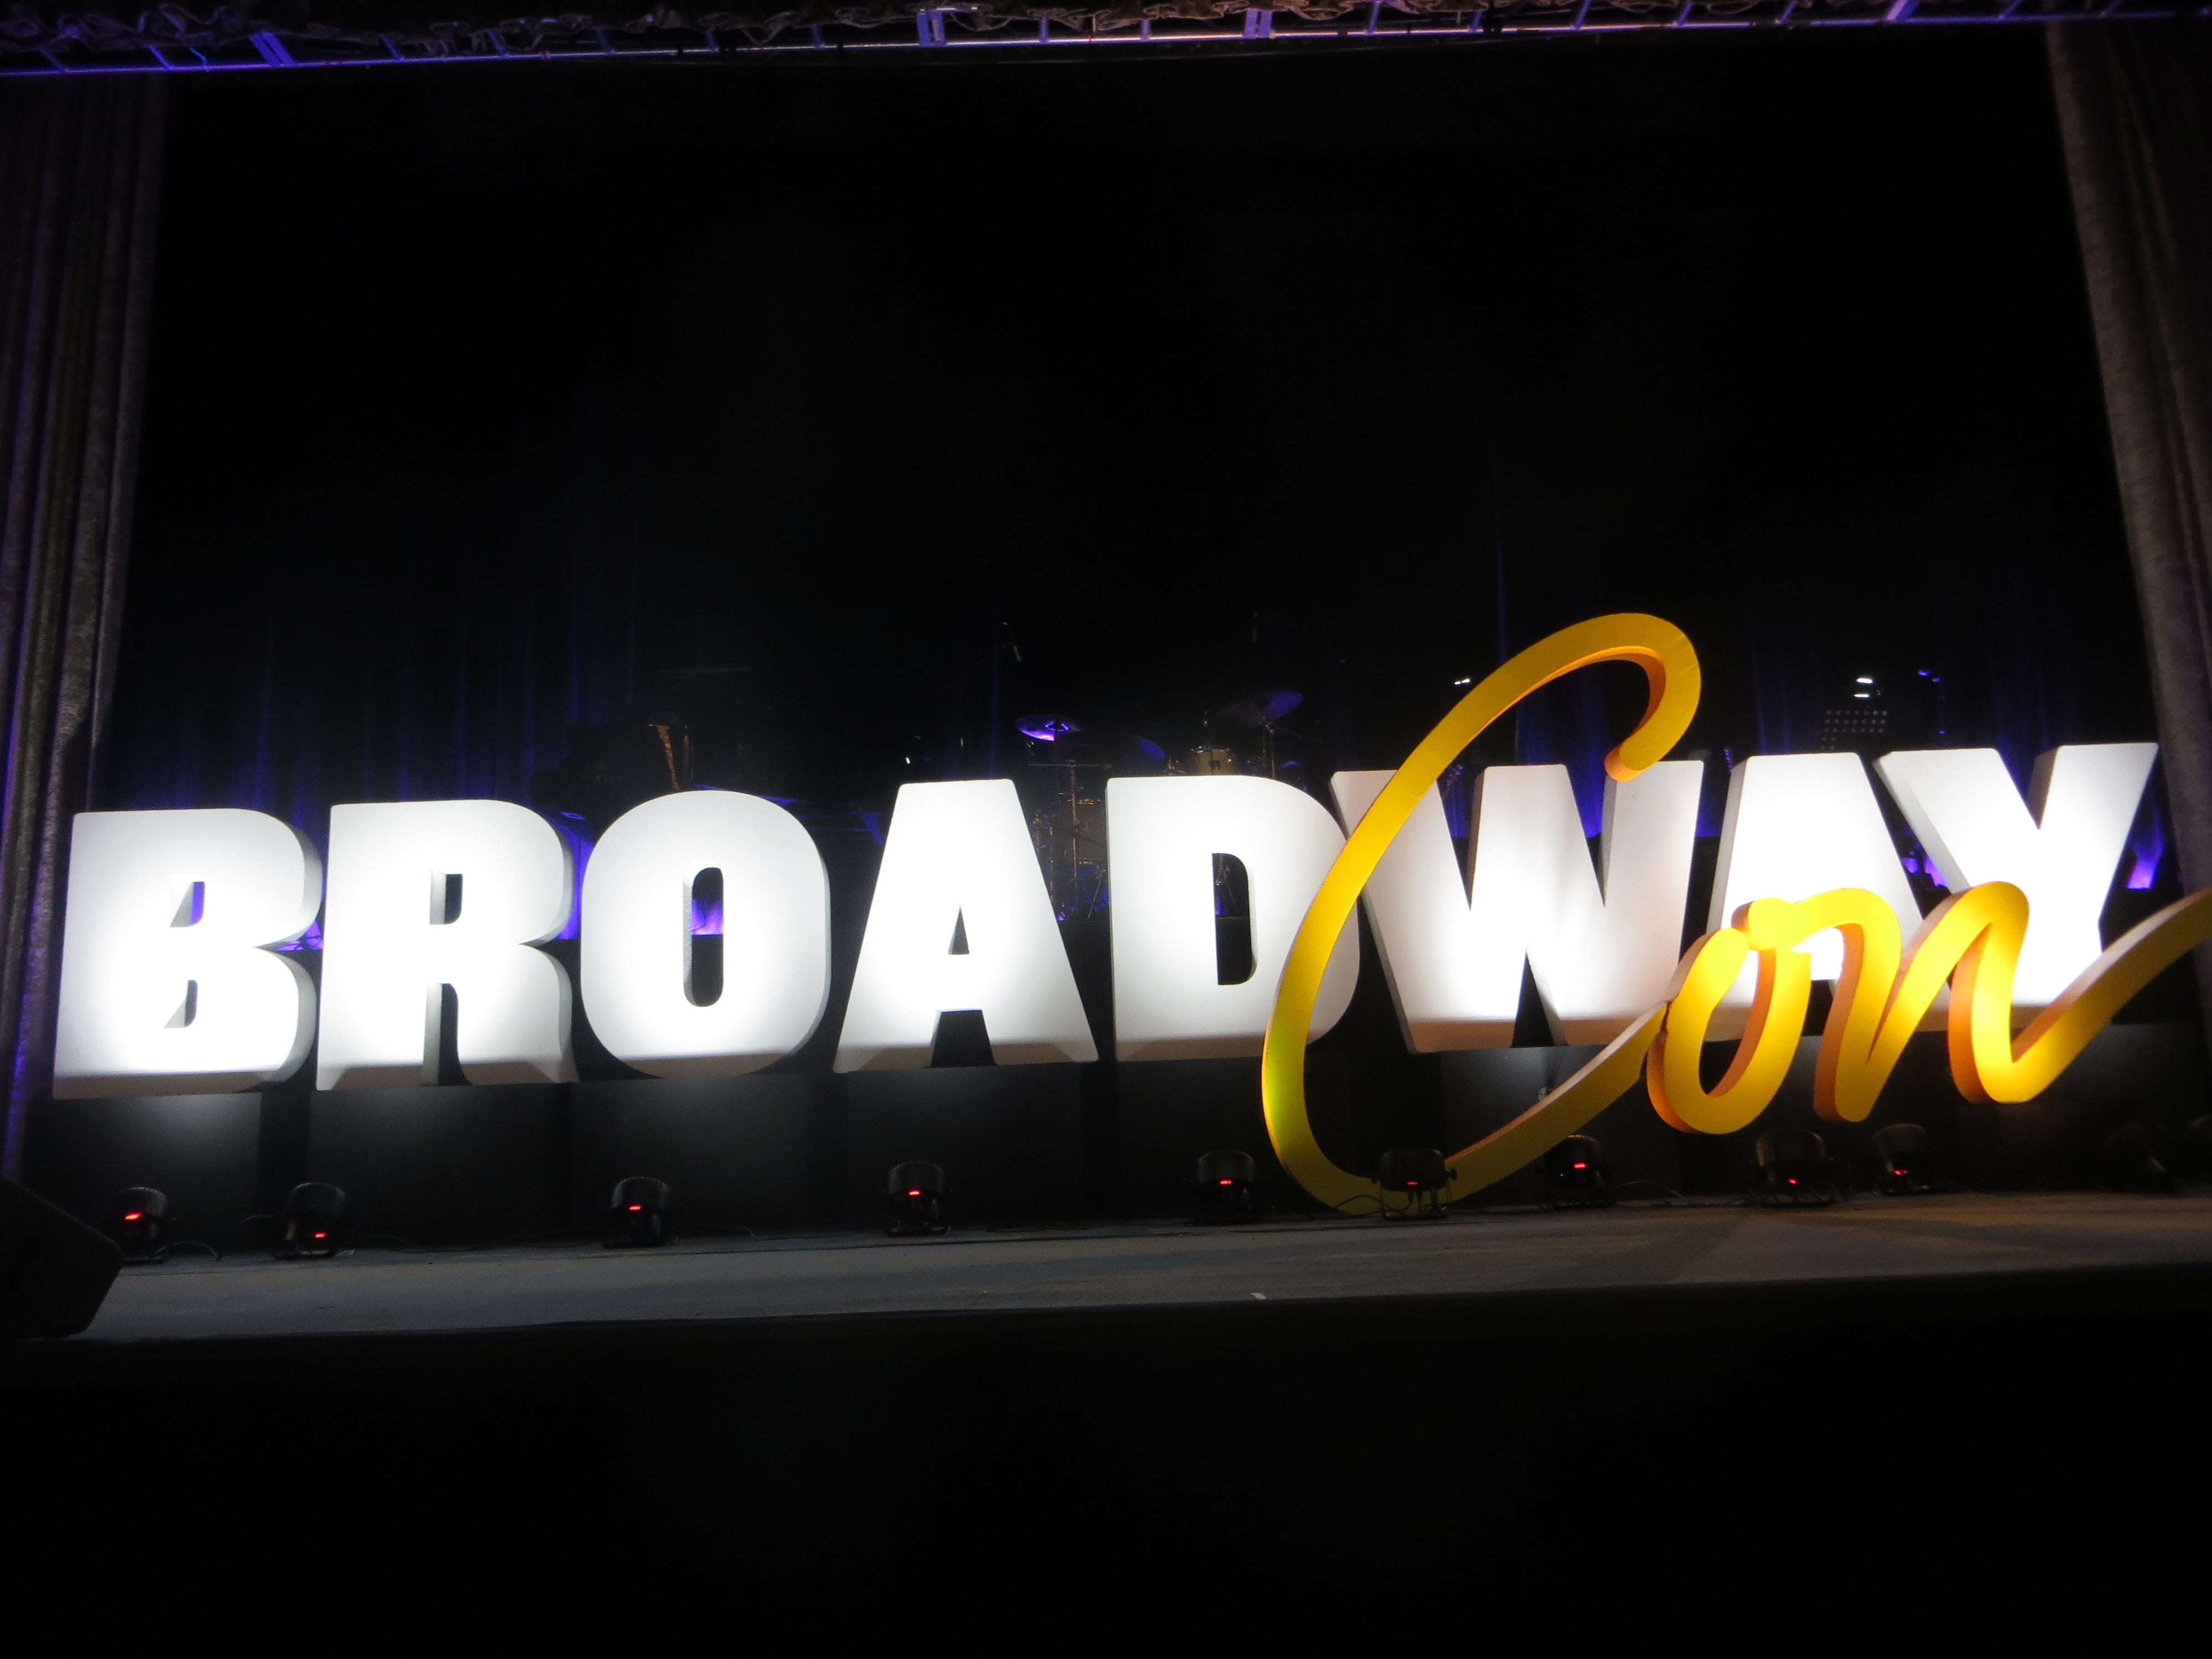 BroadwayCon 2019 was held Jan. 11 to 13, 2019, at the New York Hilton Midtown in Manhattan.